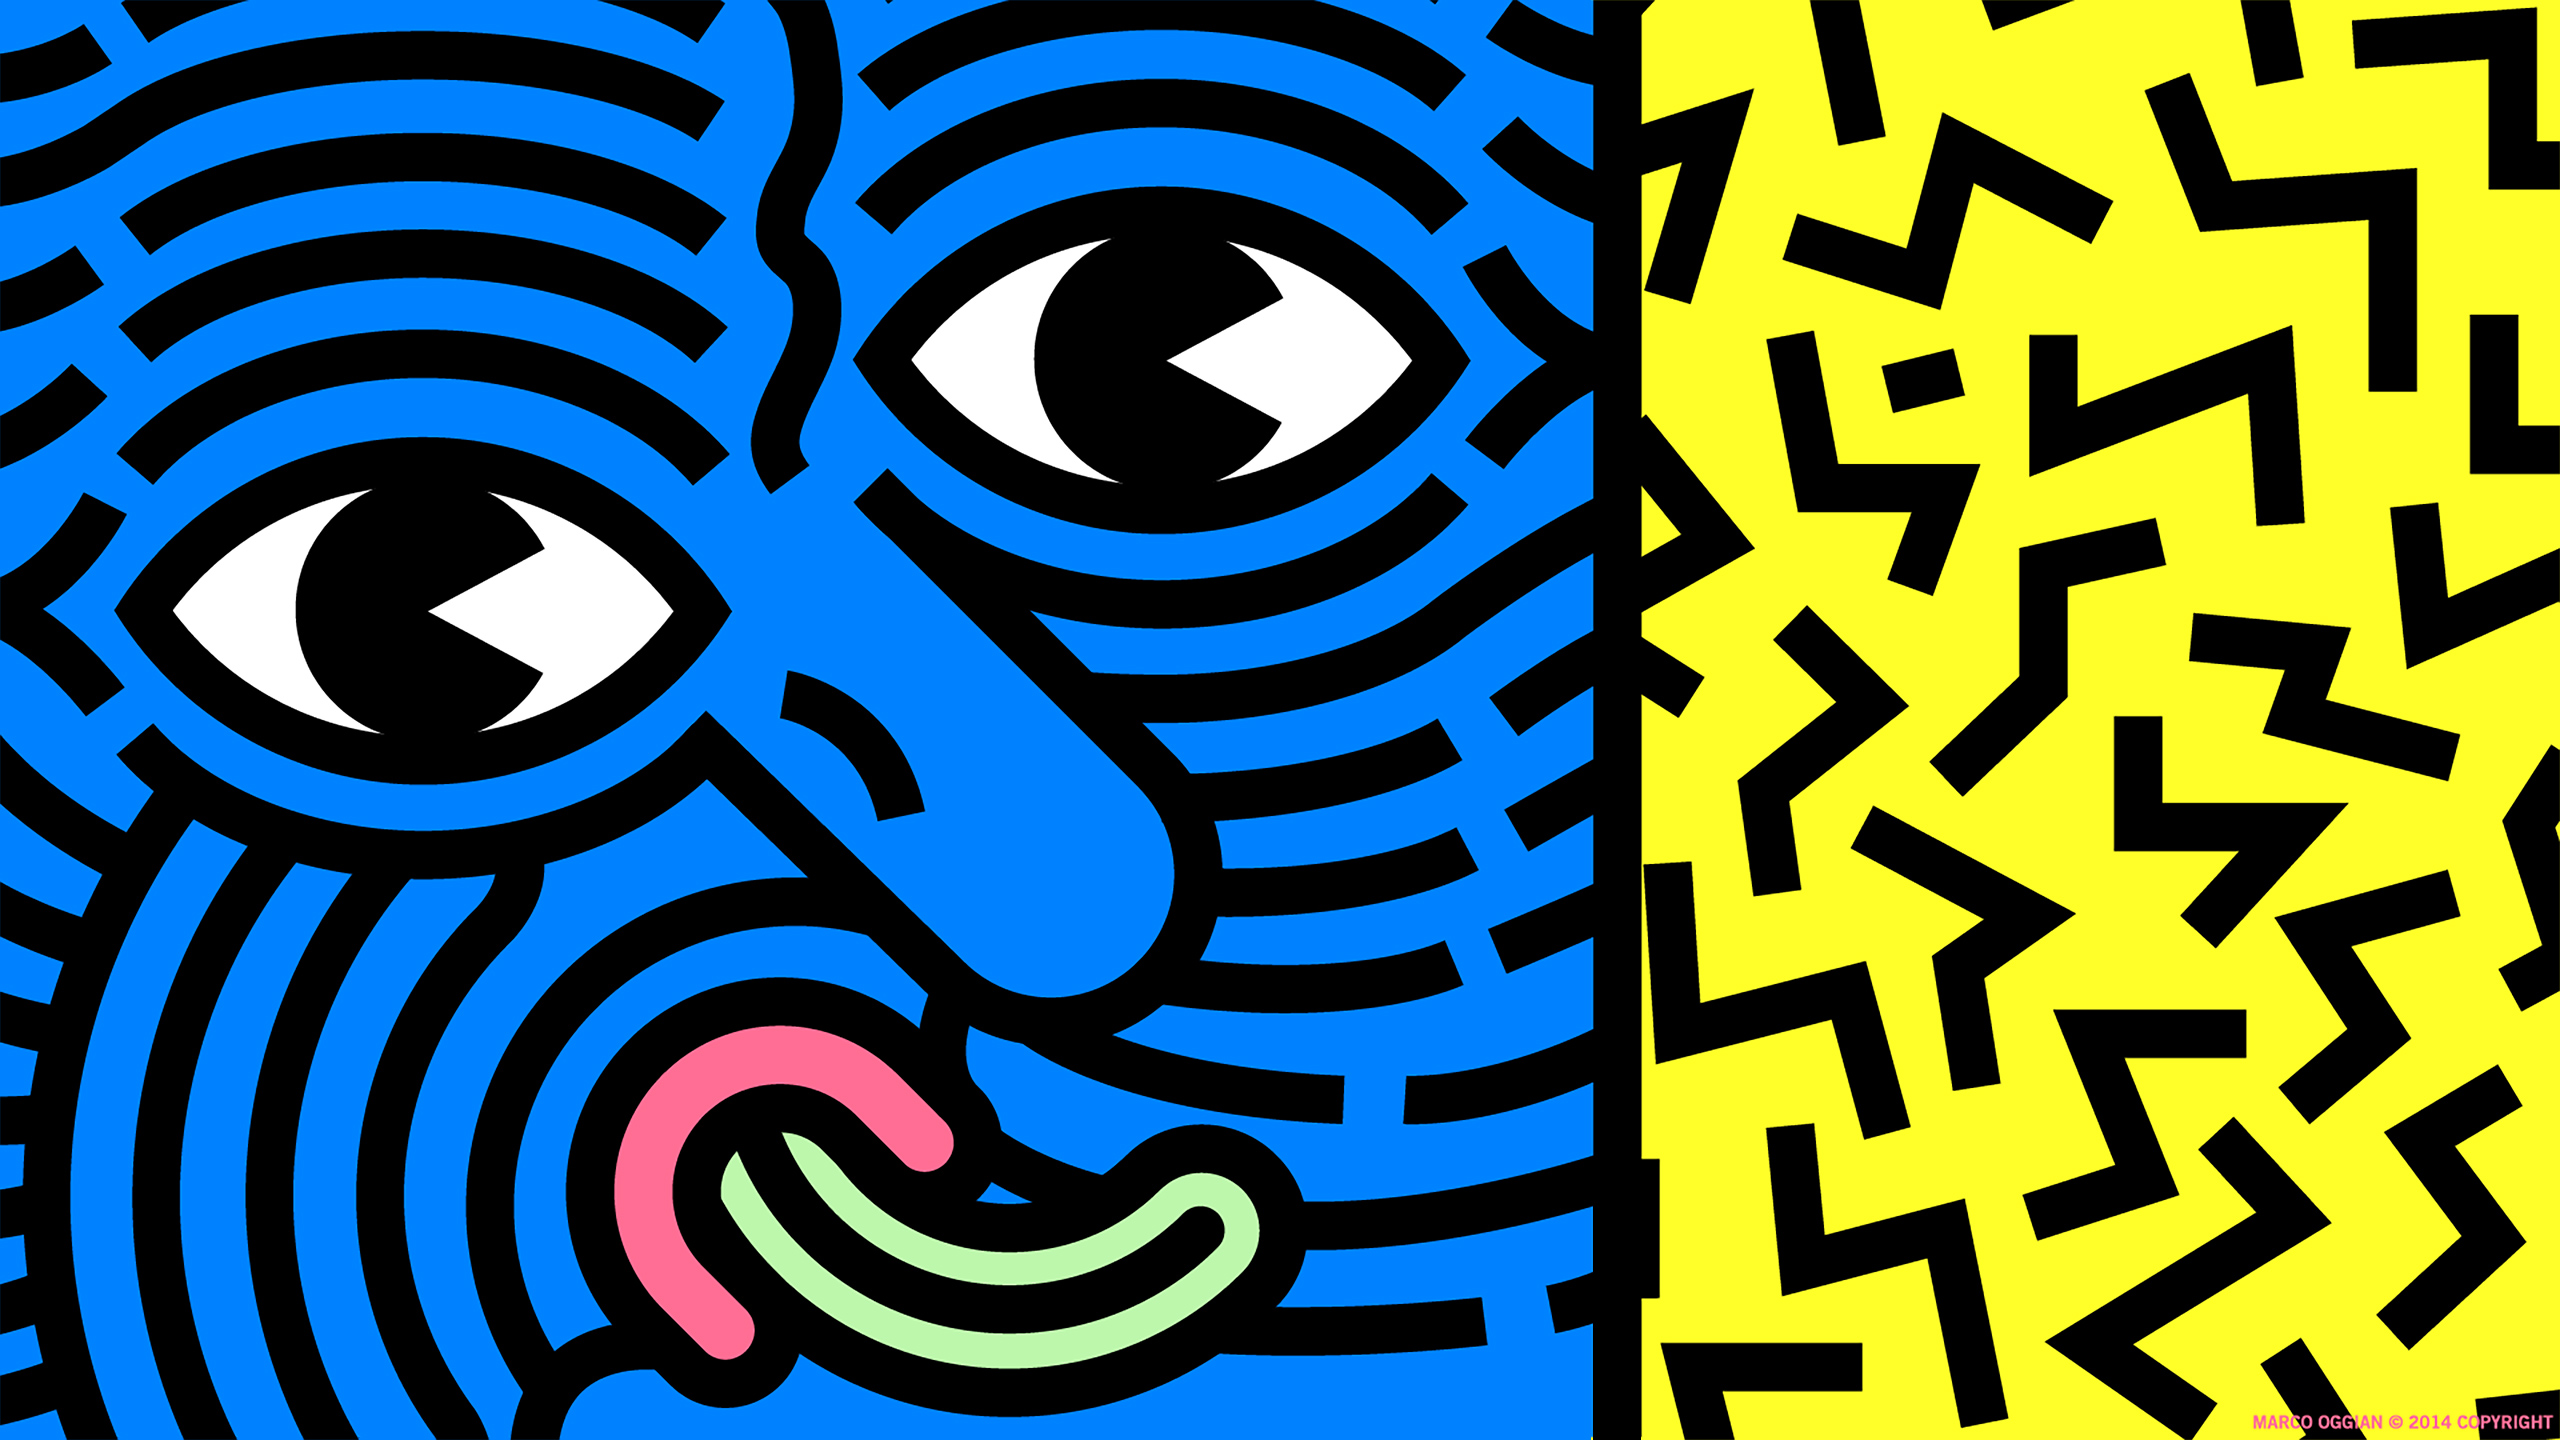 Keith Haring Wallpaper Of The Week  Marco Oggian Abduzeedo